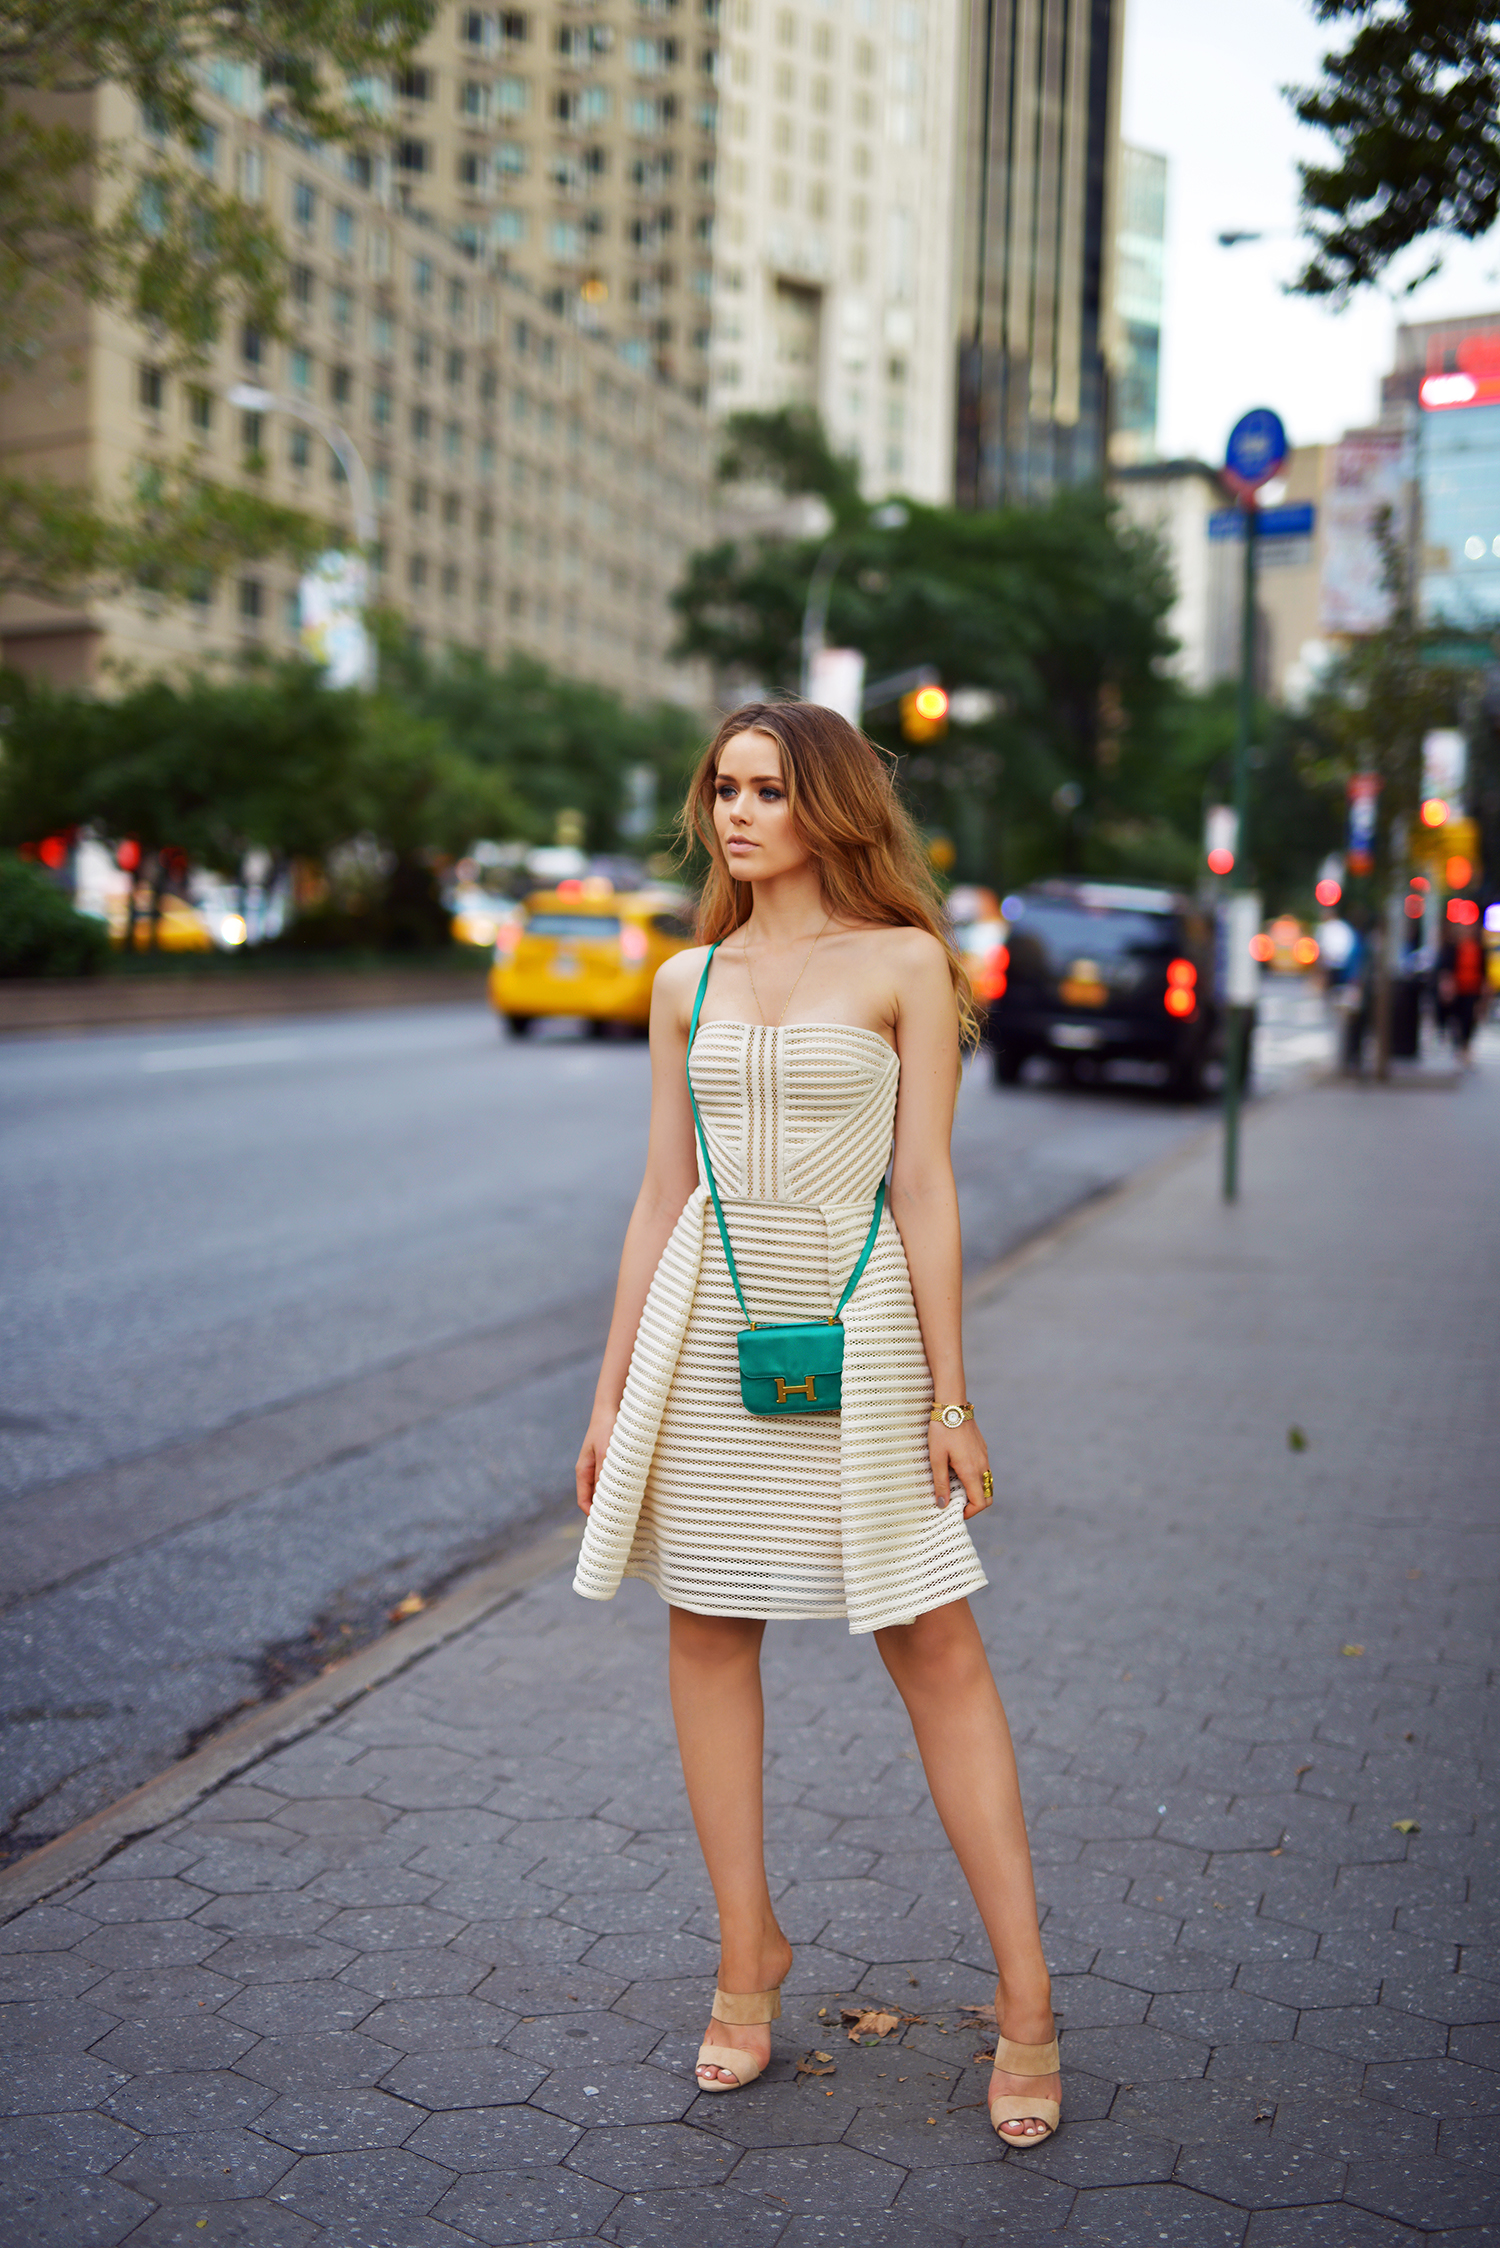 Kristina Bazan is wearing a dress from Elie Saab, shoes from Alexander Wang and the bag is from Hermès